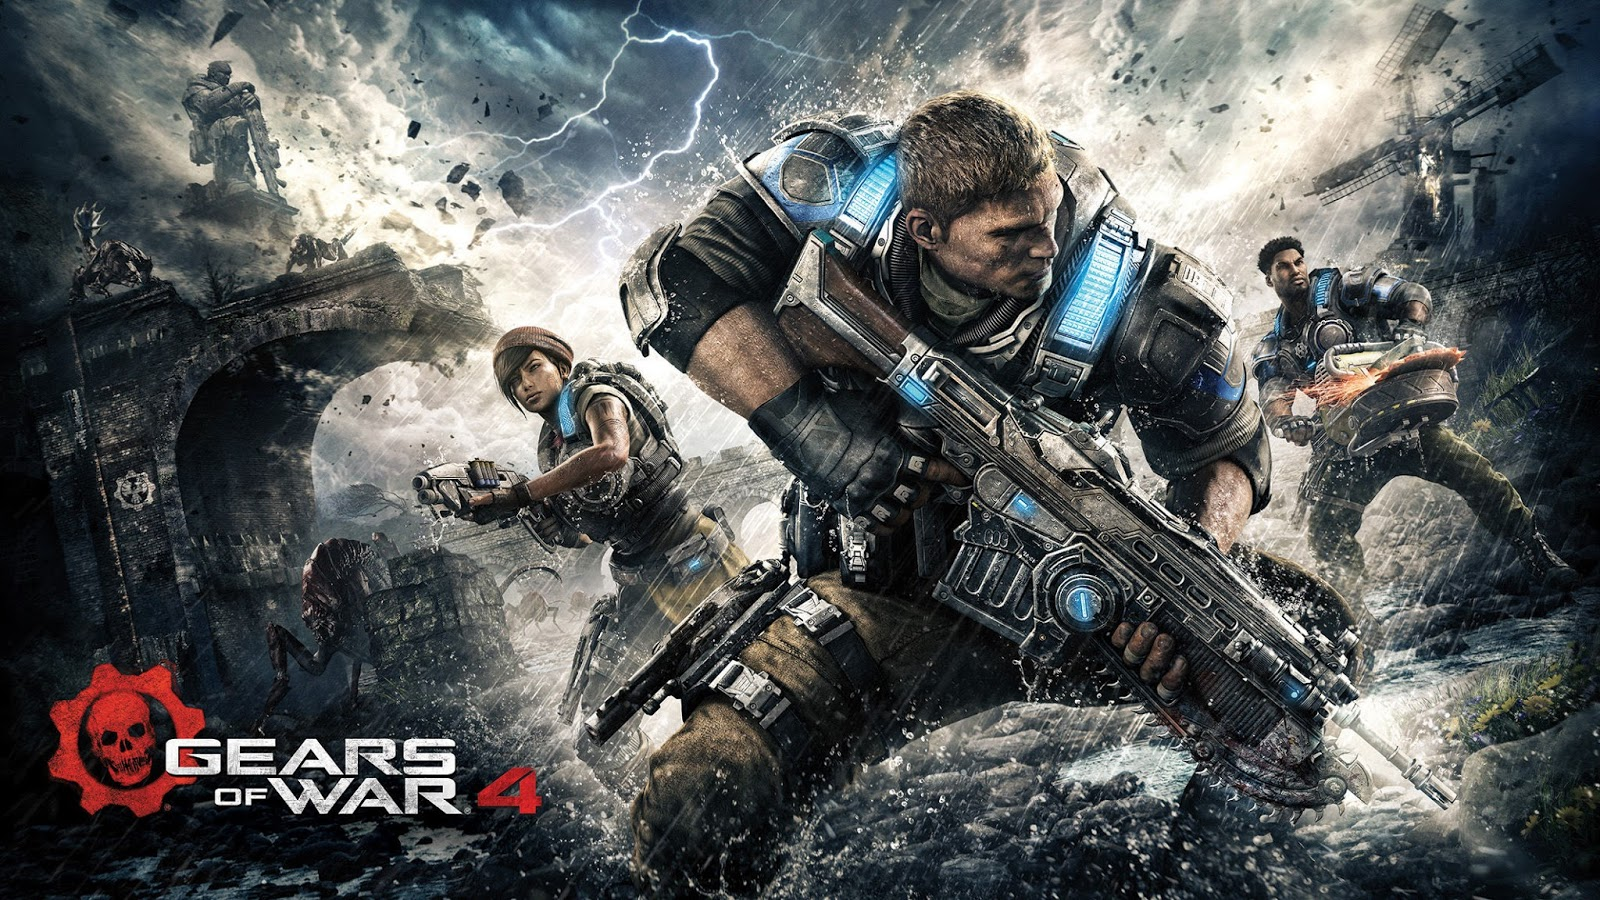 gears of war 4 xbox one review chalgyr 39 s game room. Black Bedroom Furniture Sets. Home Design Ideas